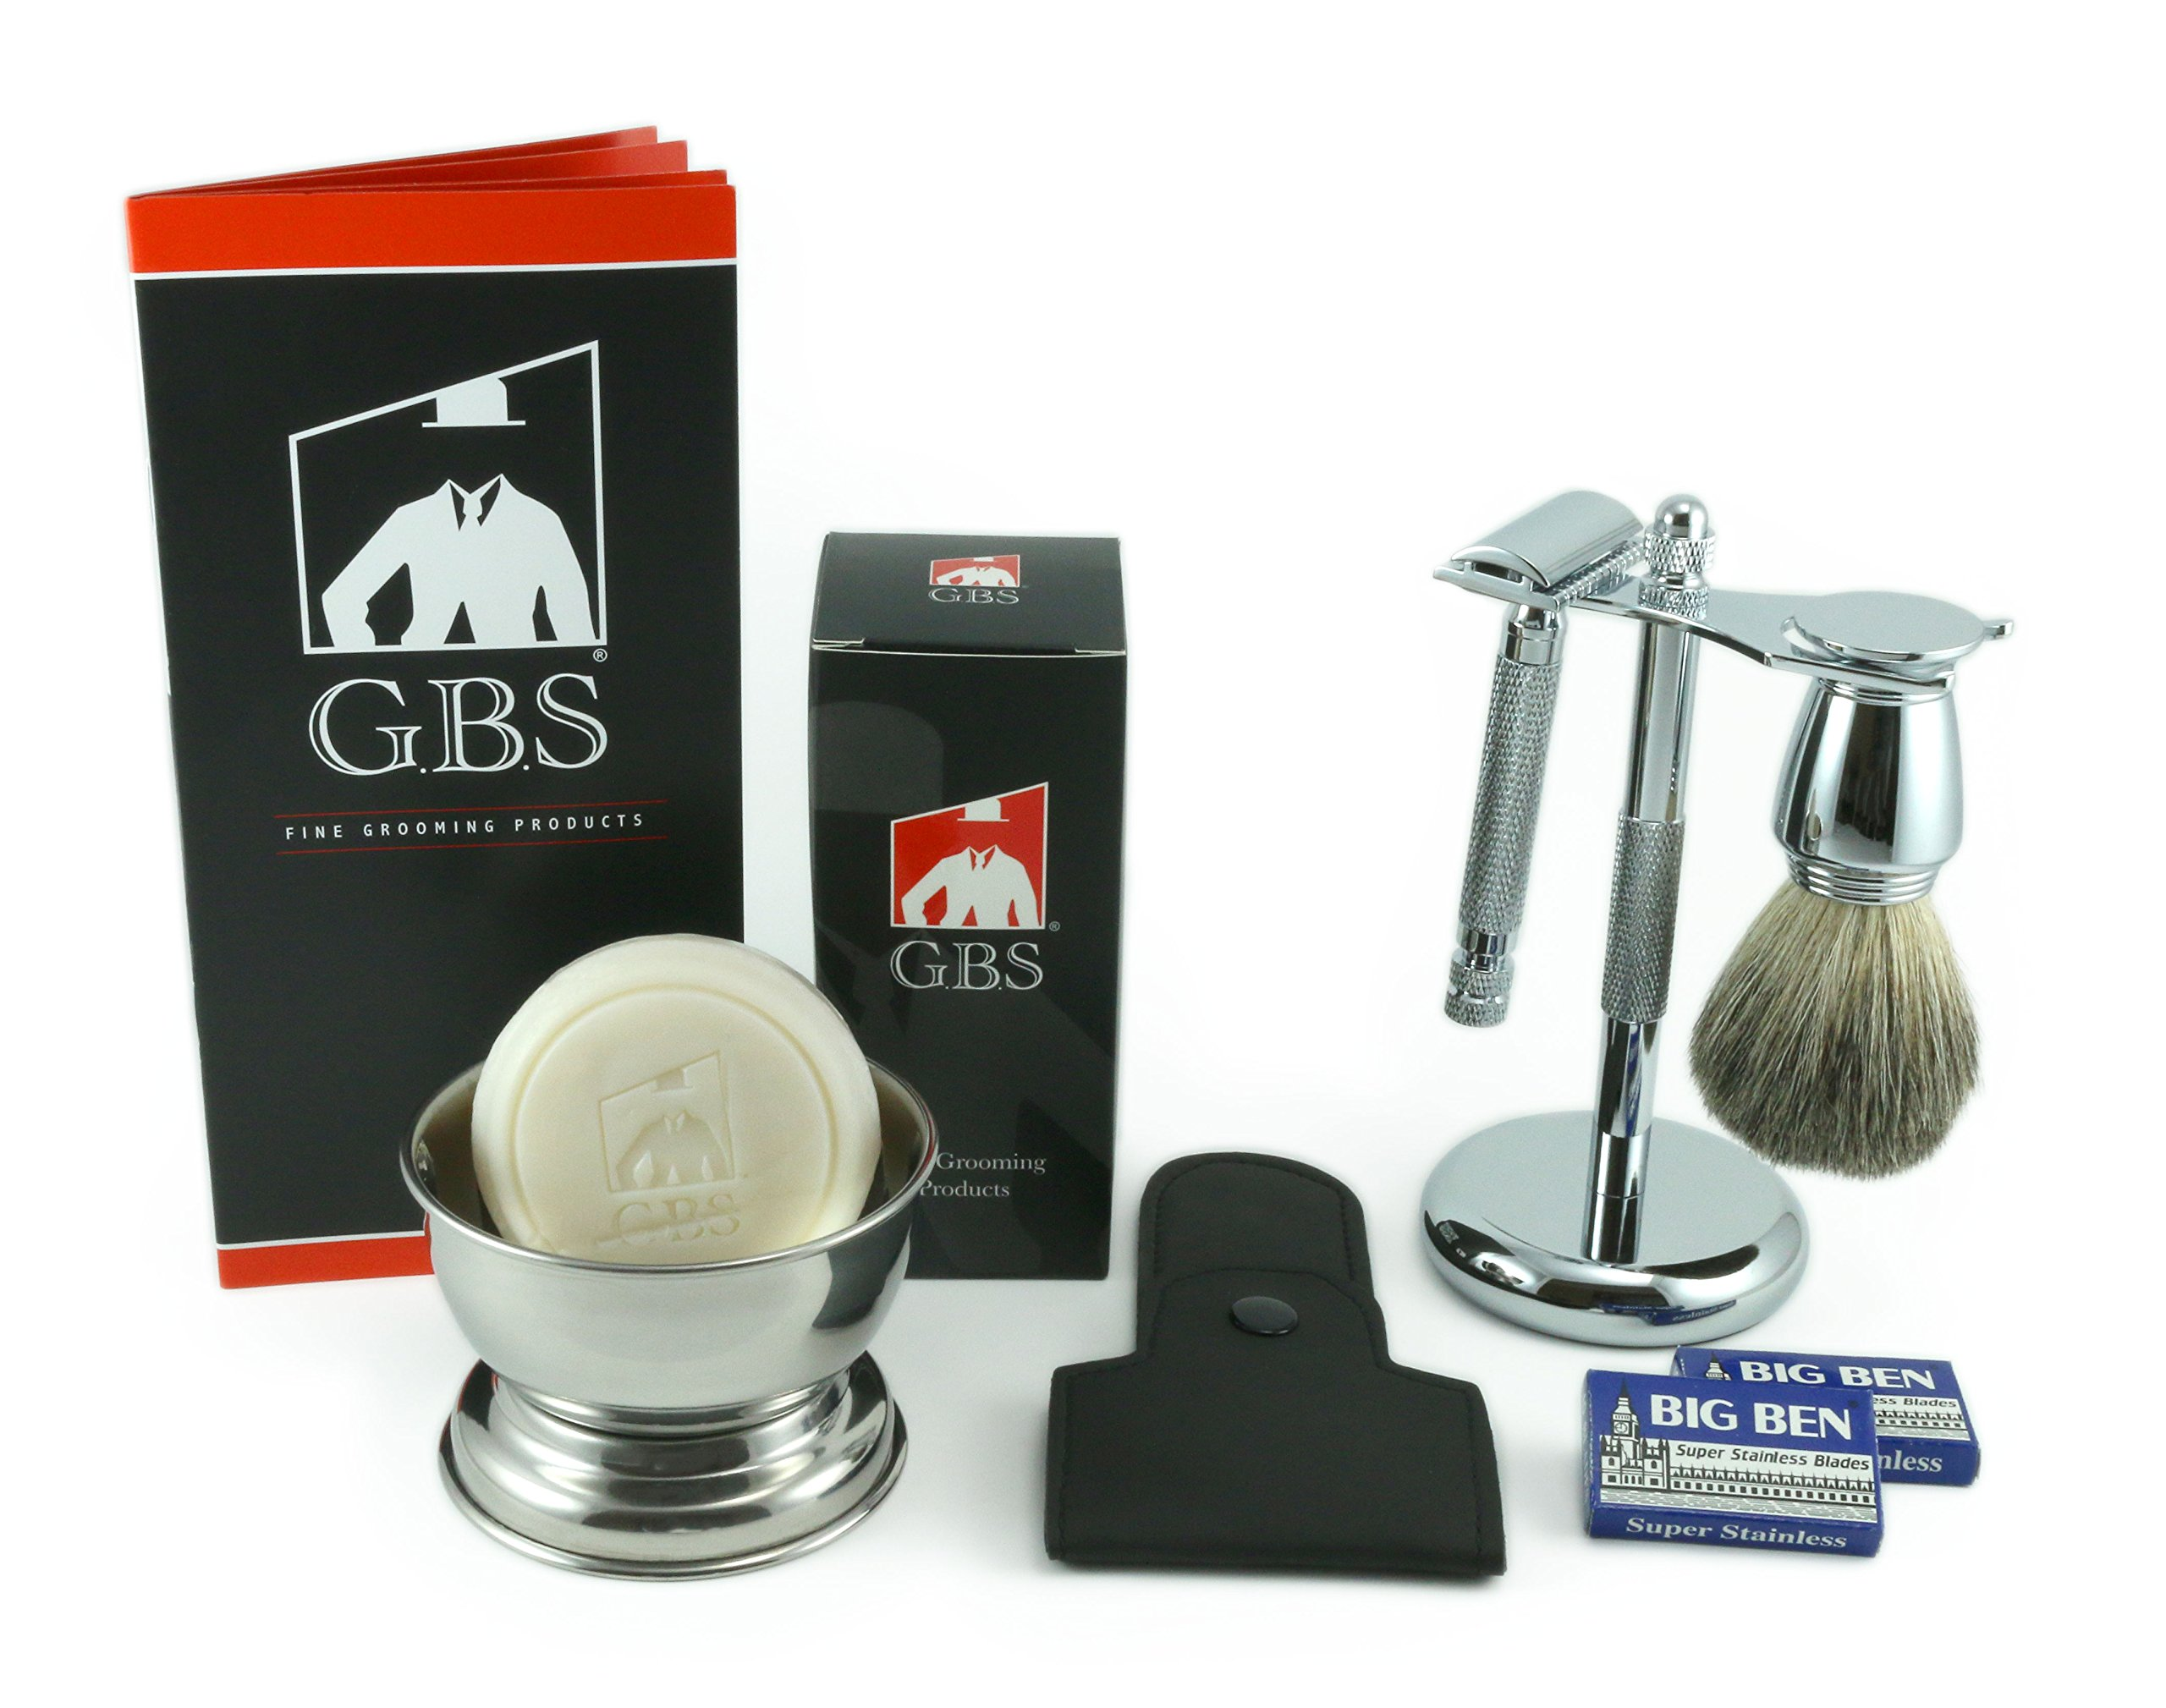 Men's Chrome Grooming Set With, Our Most Advanced De Razor Shaving Mug, 100% Pure Badger Brush, Brush and Razor Stand, Leather Case and 97% All Natural Gbs Ocean Driftwood Shave Soap